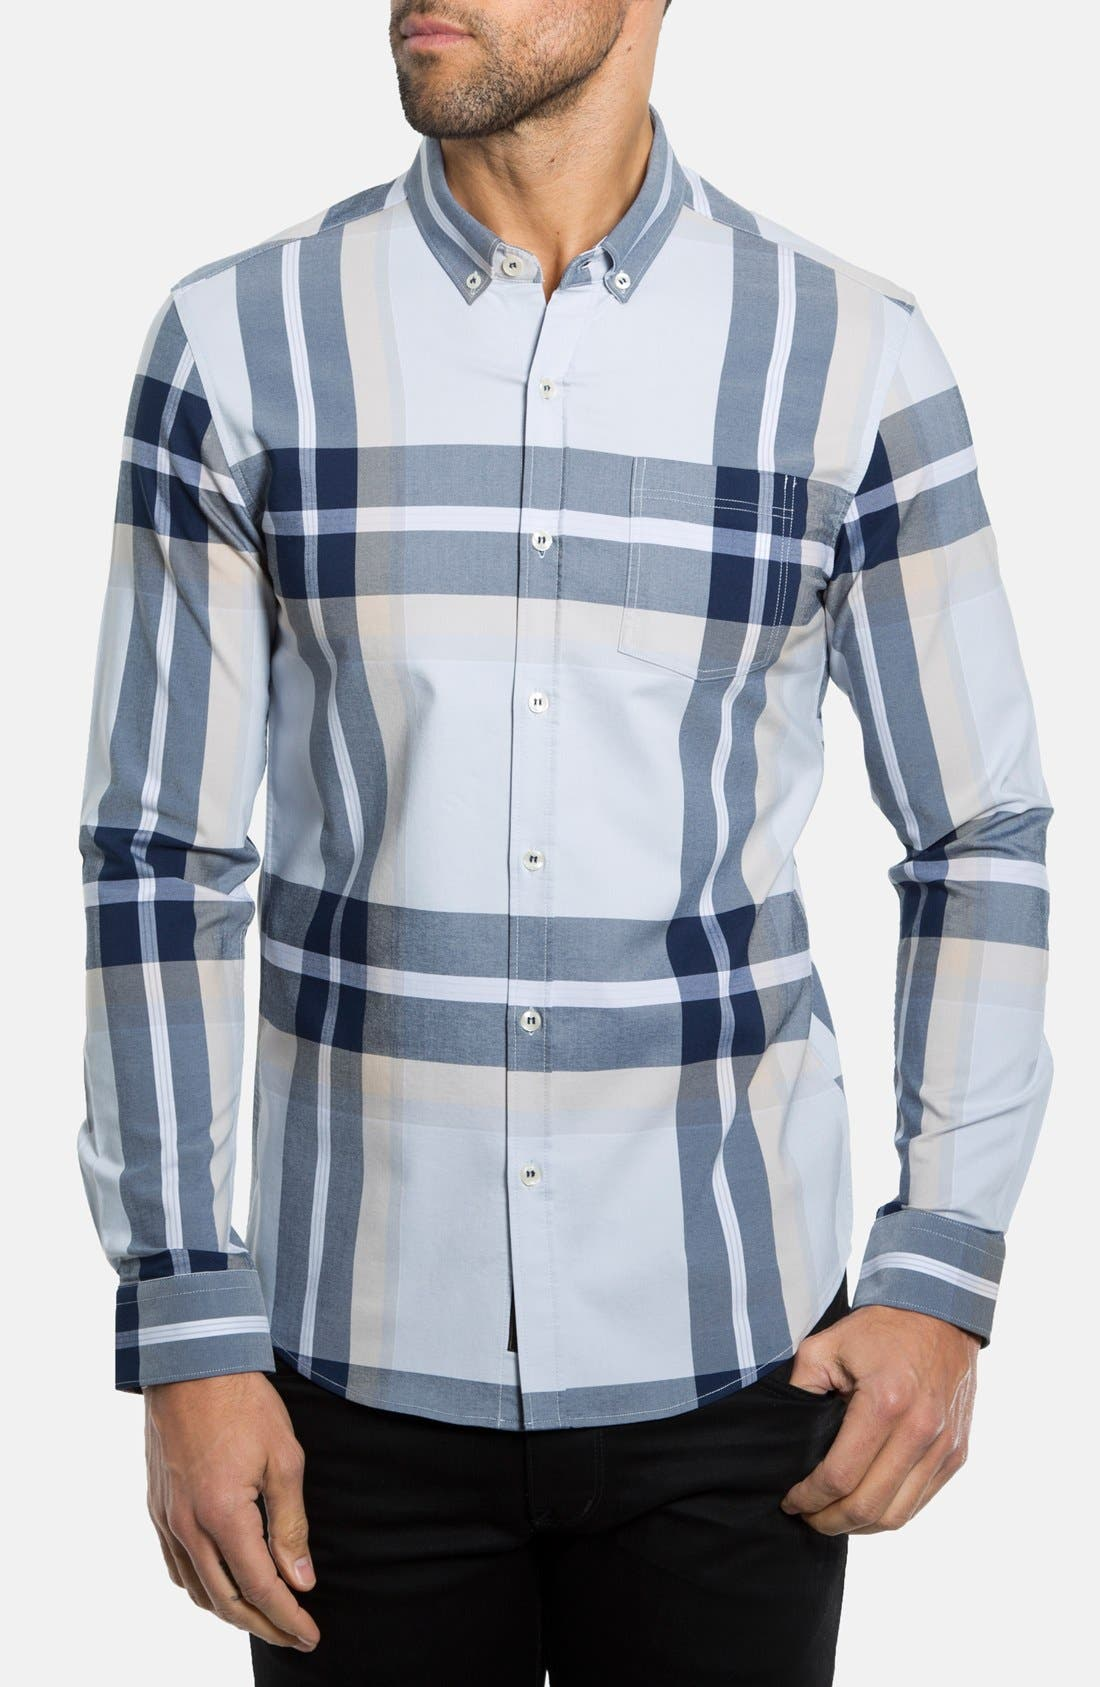 Main Image - 7 Diamonds 'Sky and Sand' Trim Fit Plaid Woven Shirt